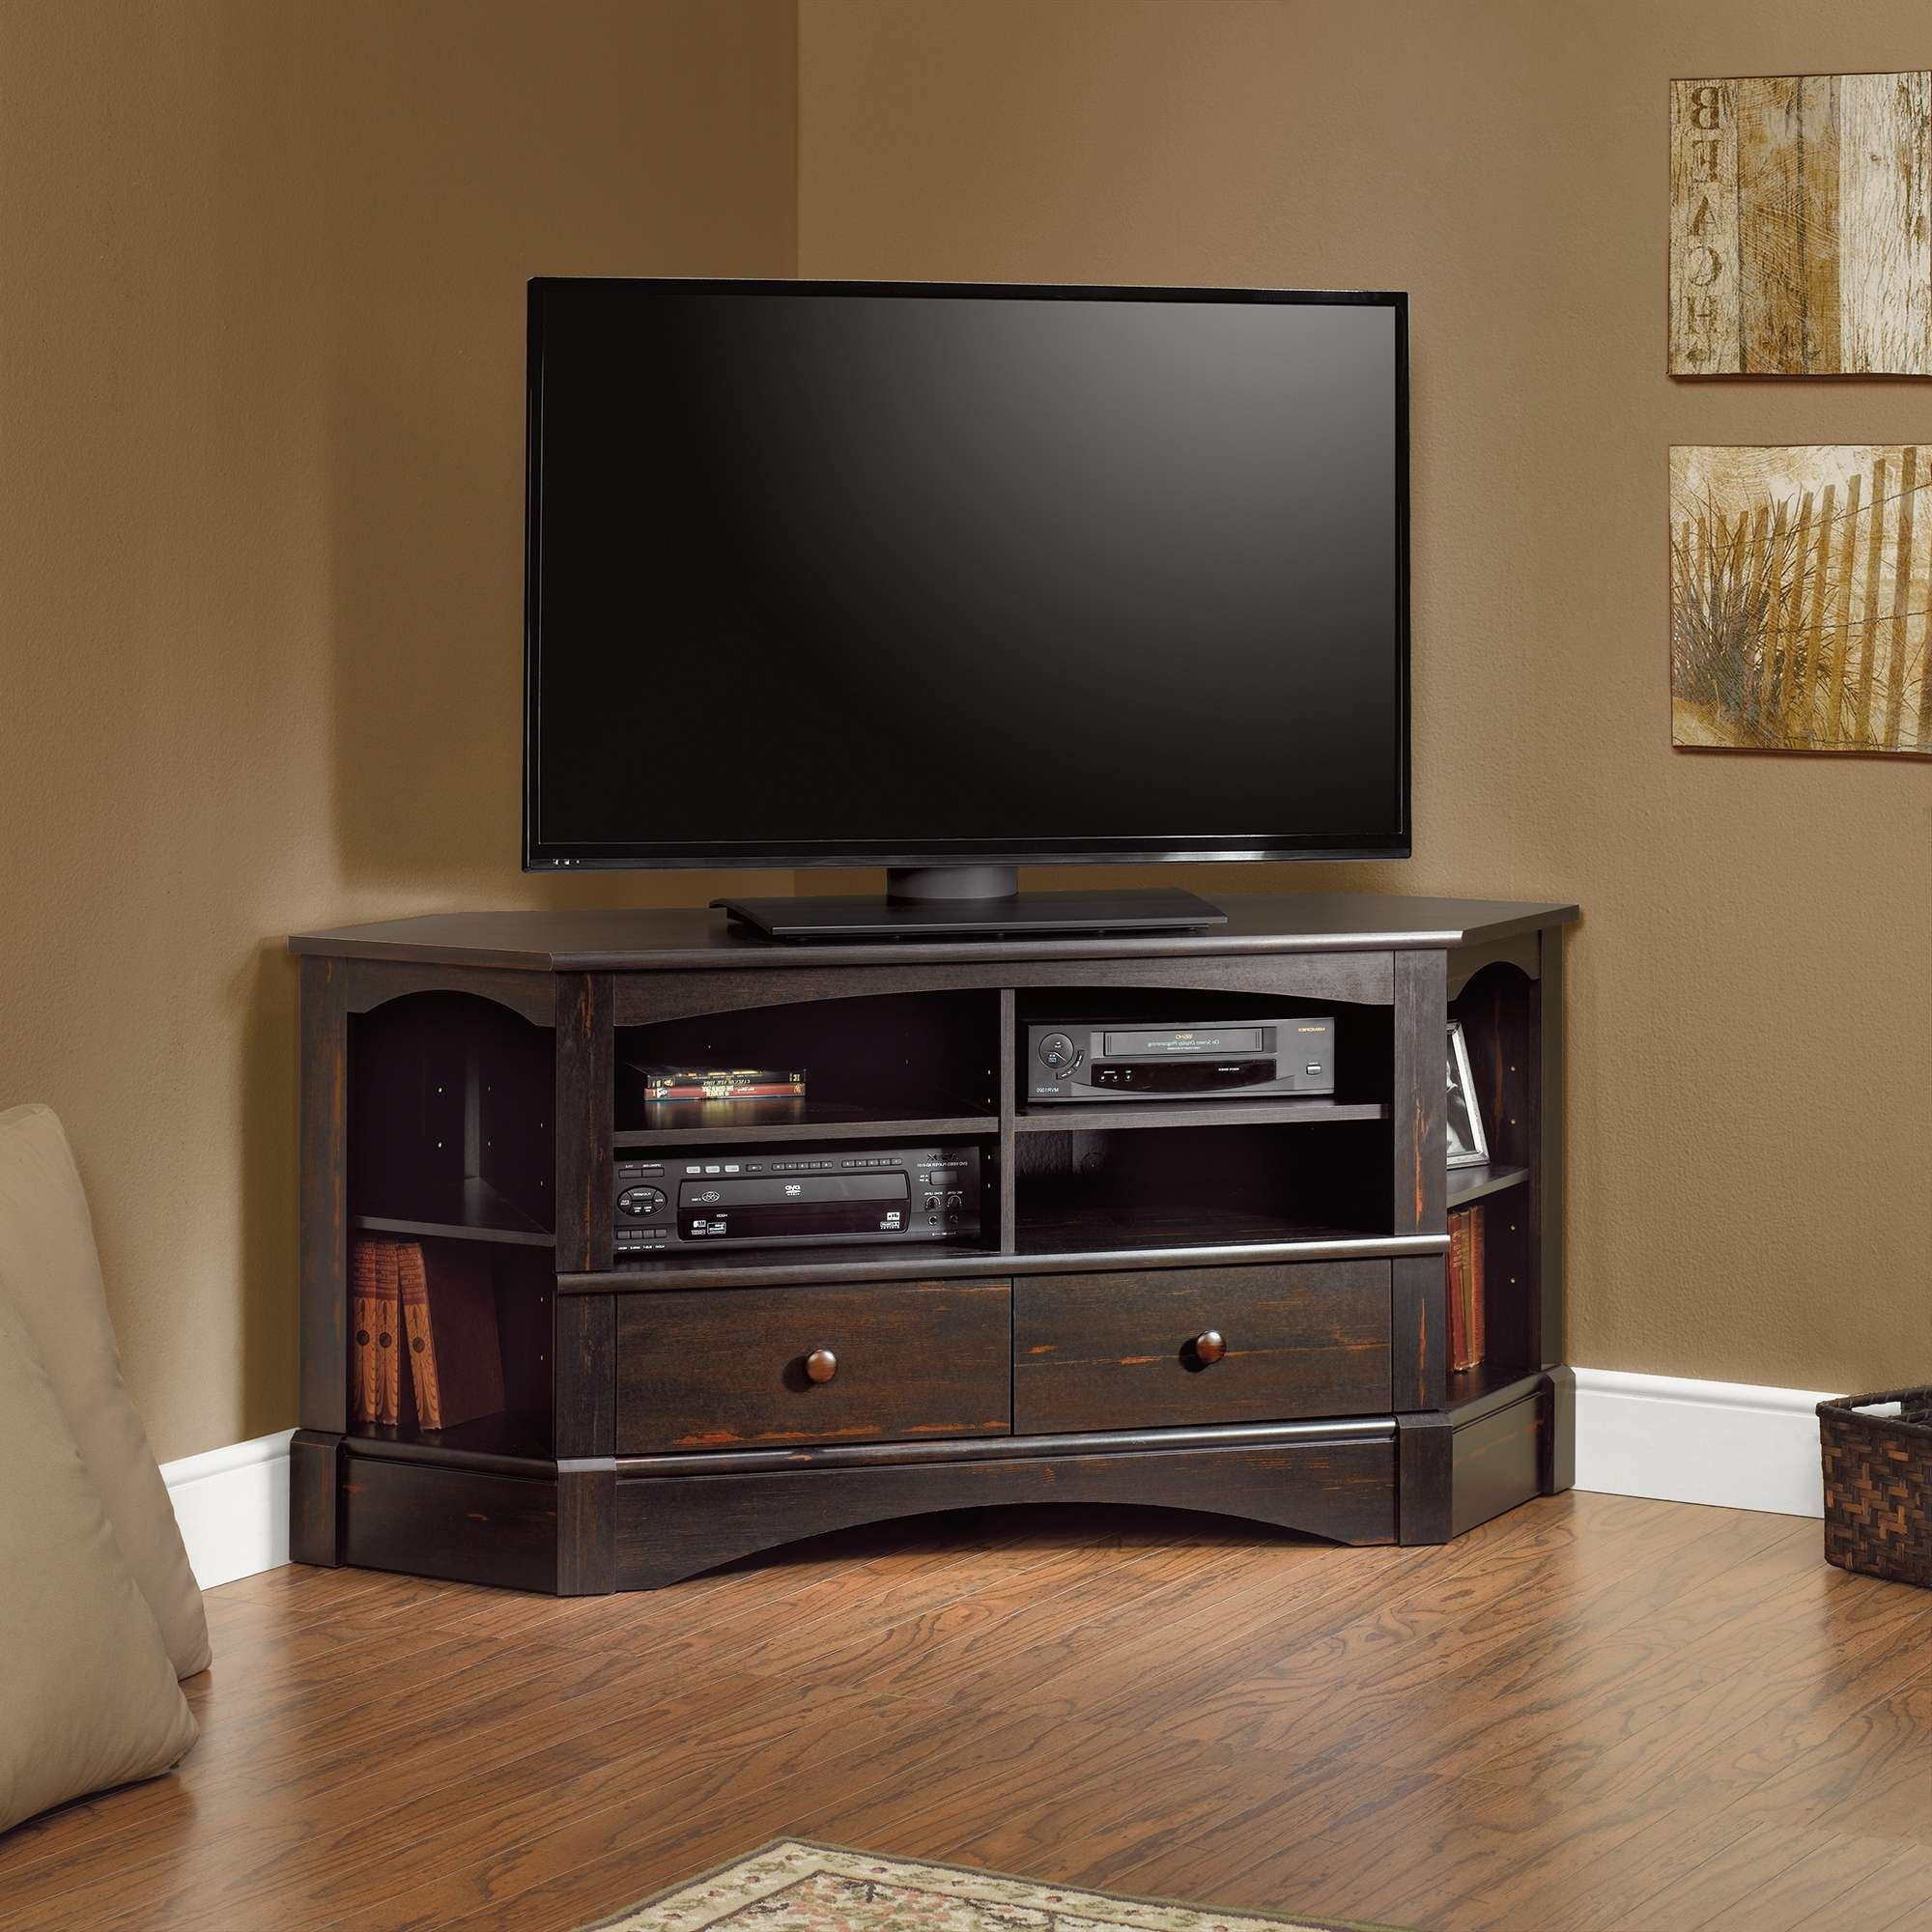 Harbor View | Corner Entertainment Credenza | 402902 | Sauder Intended For Painted Tv Stands (View 7 of 15)